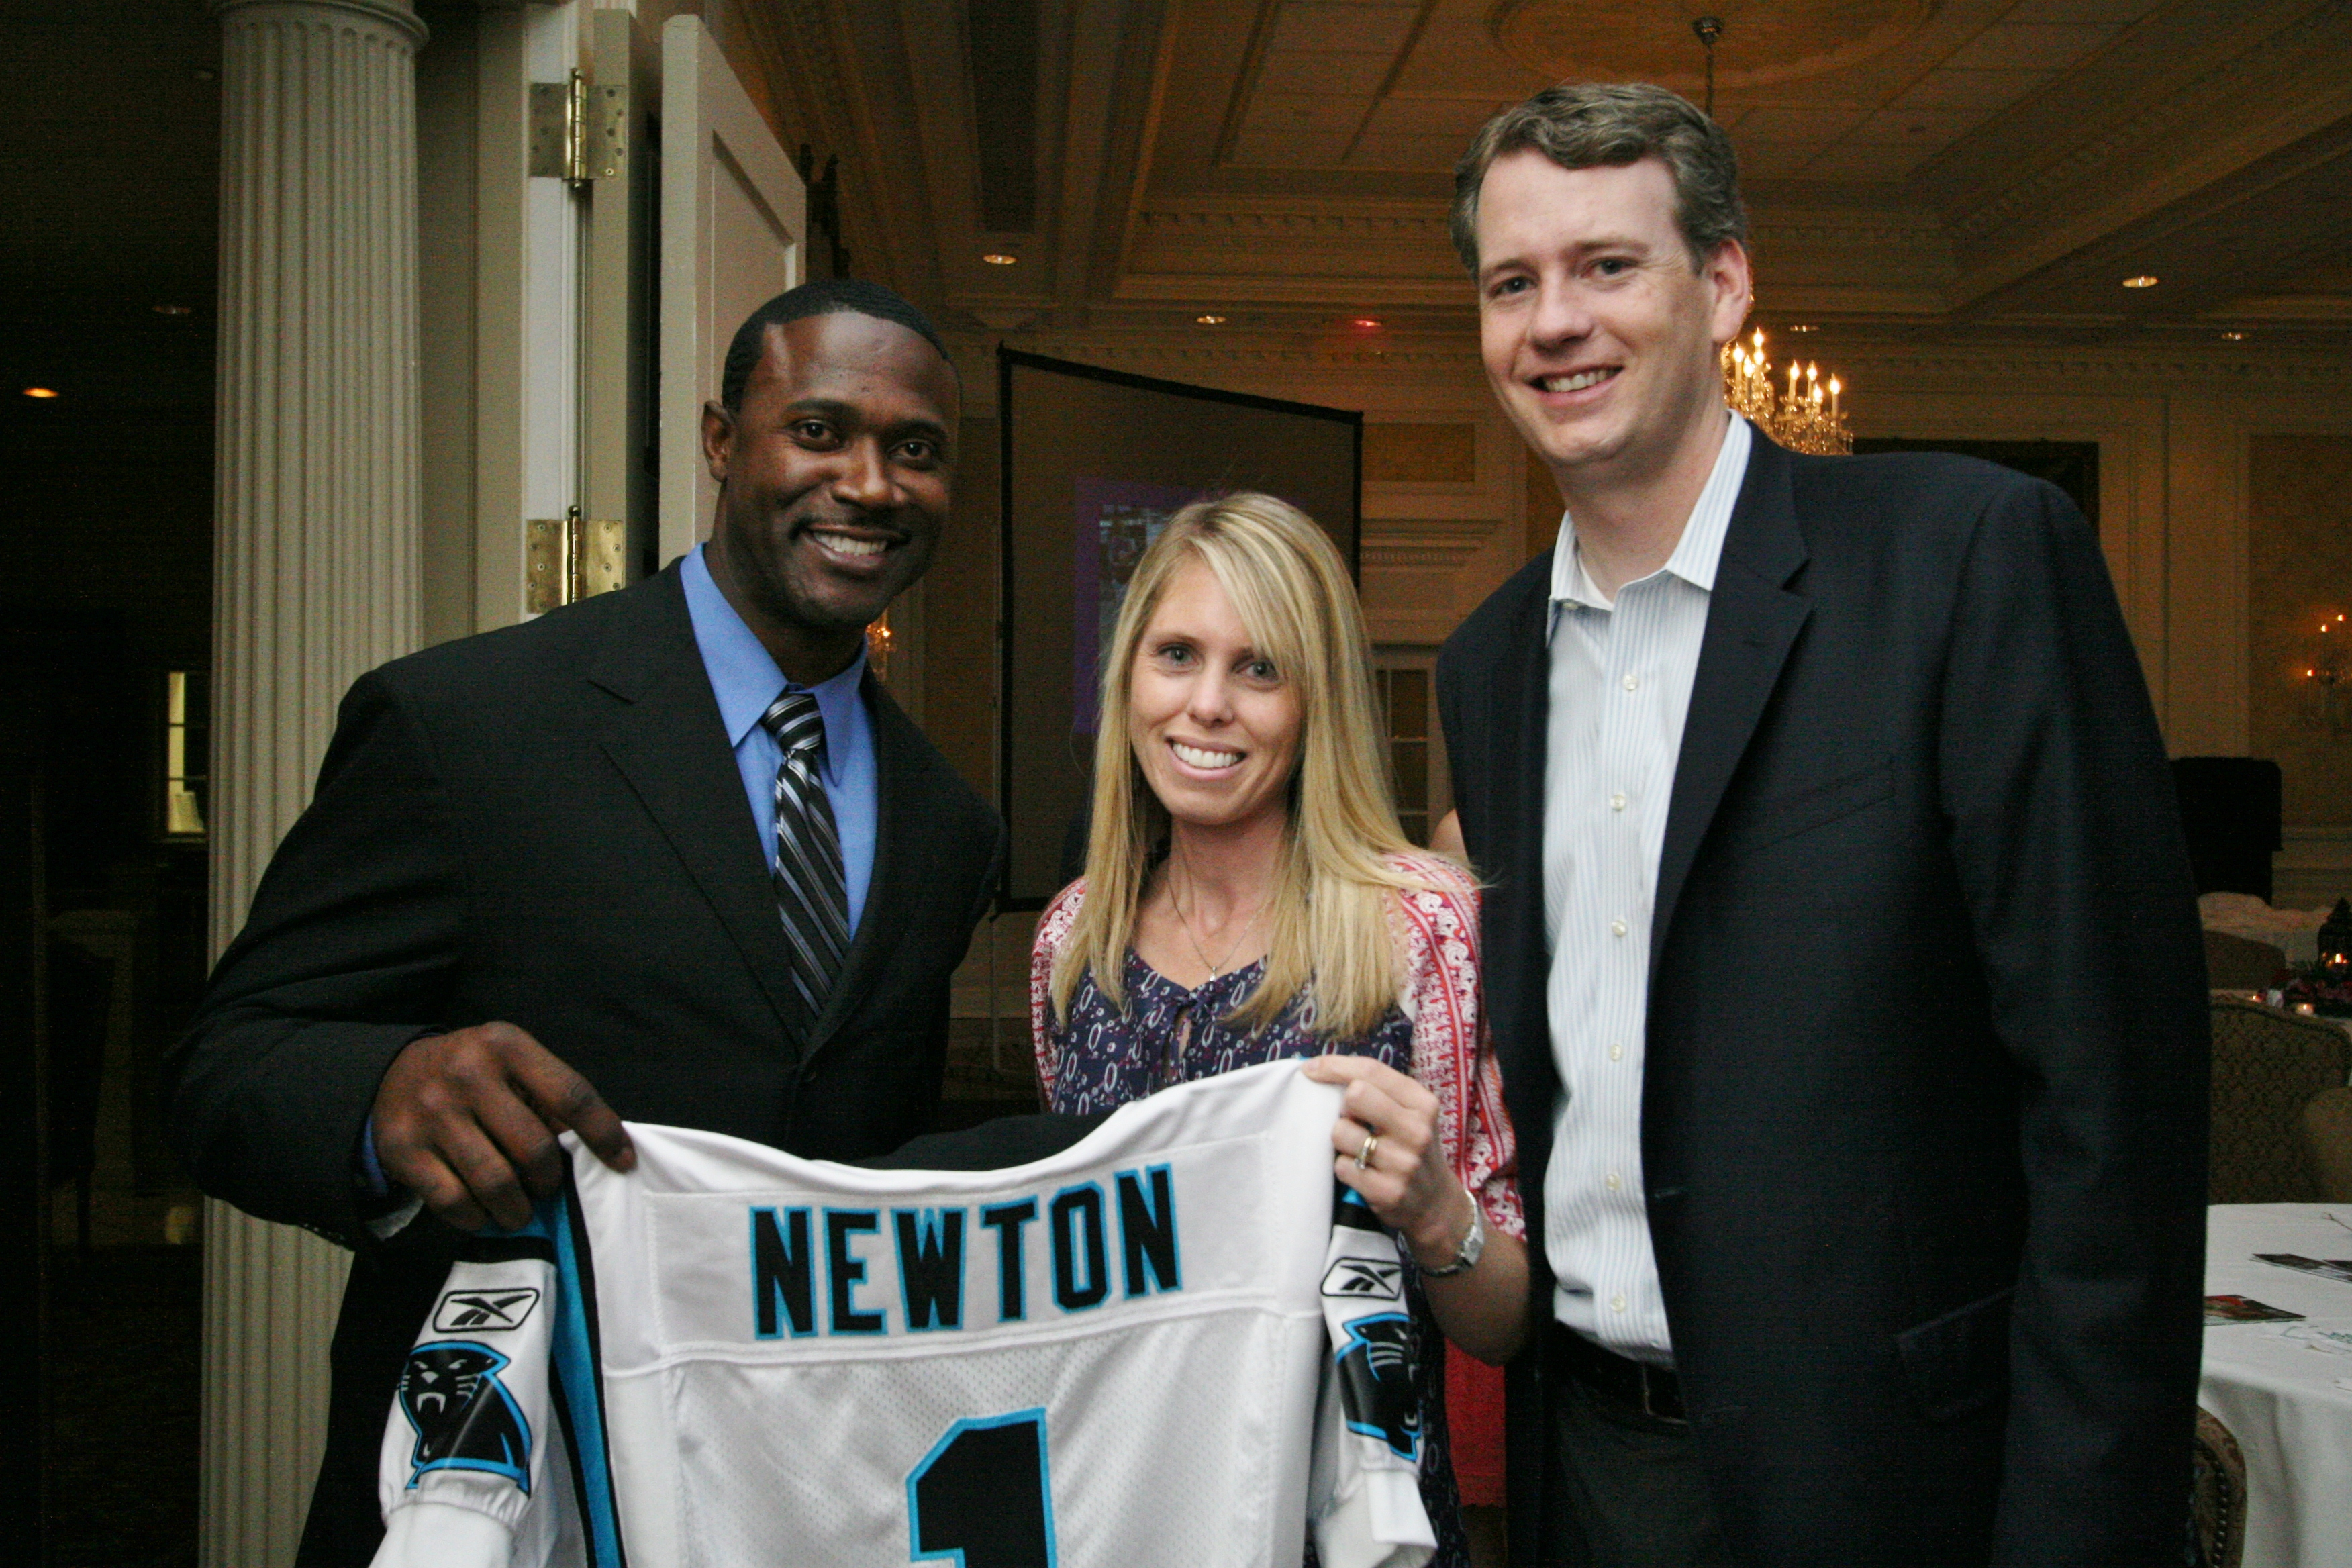 MVP jersey auctioned